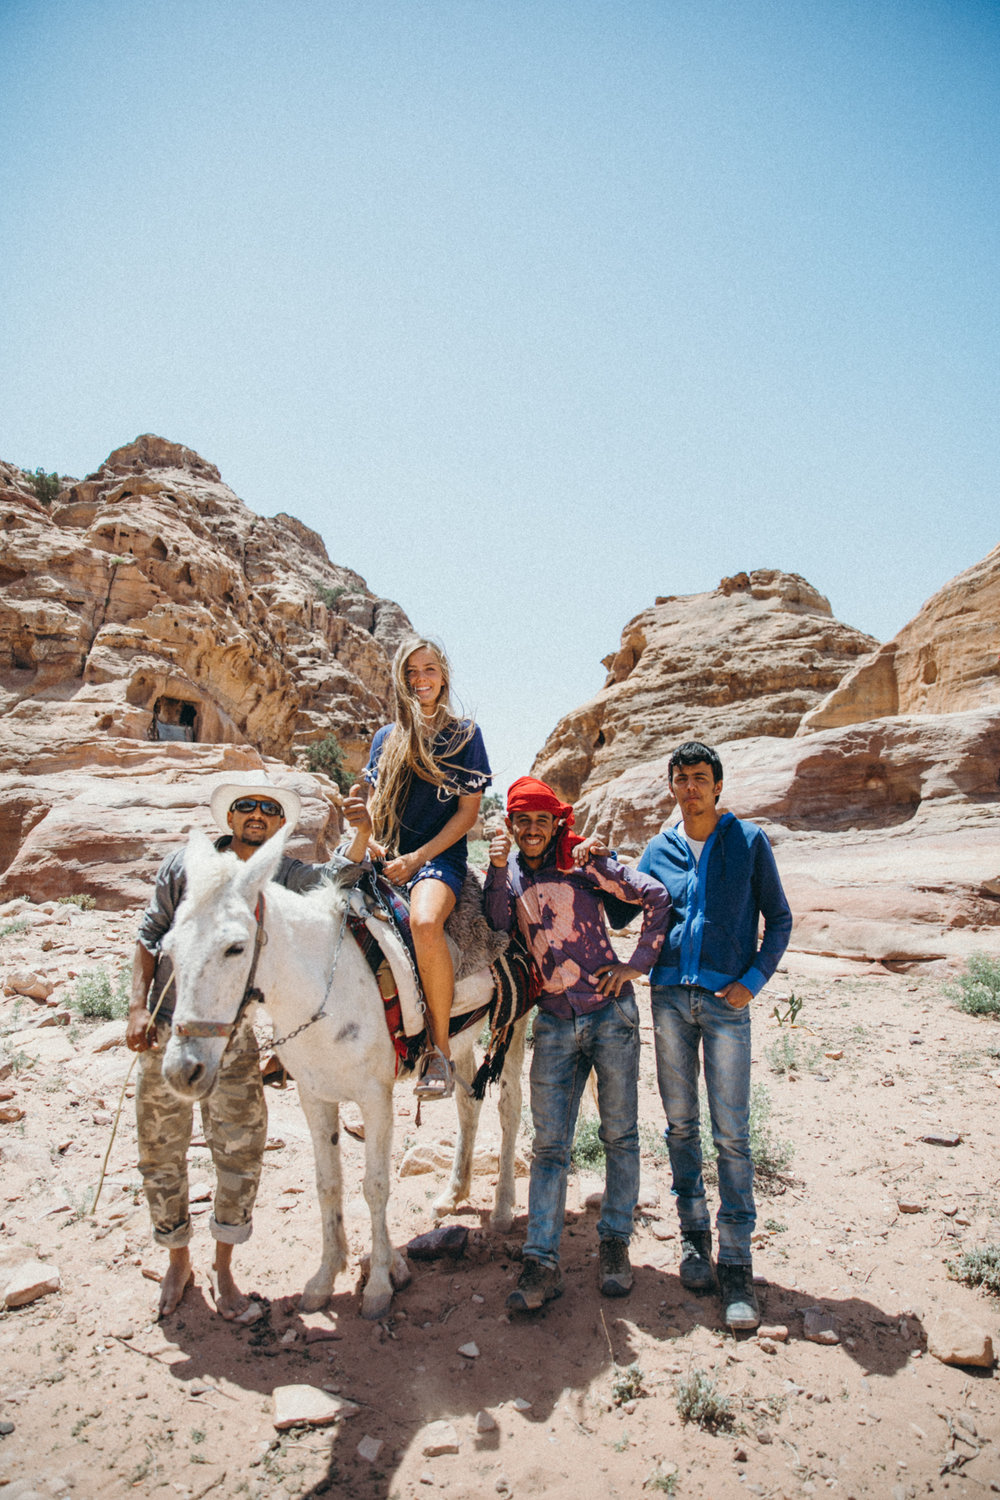 They were so stoked to put me up on this donkey. It was a long slow ride up the mountain, so I asked if we could go faster. Suddenly the dude hopped on and we were squished on this little donkey going full speed up a sketchy trail. I really need to learn to shut my mouth haha.